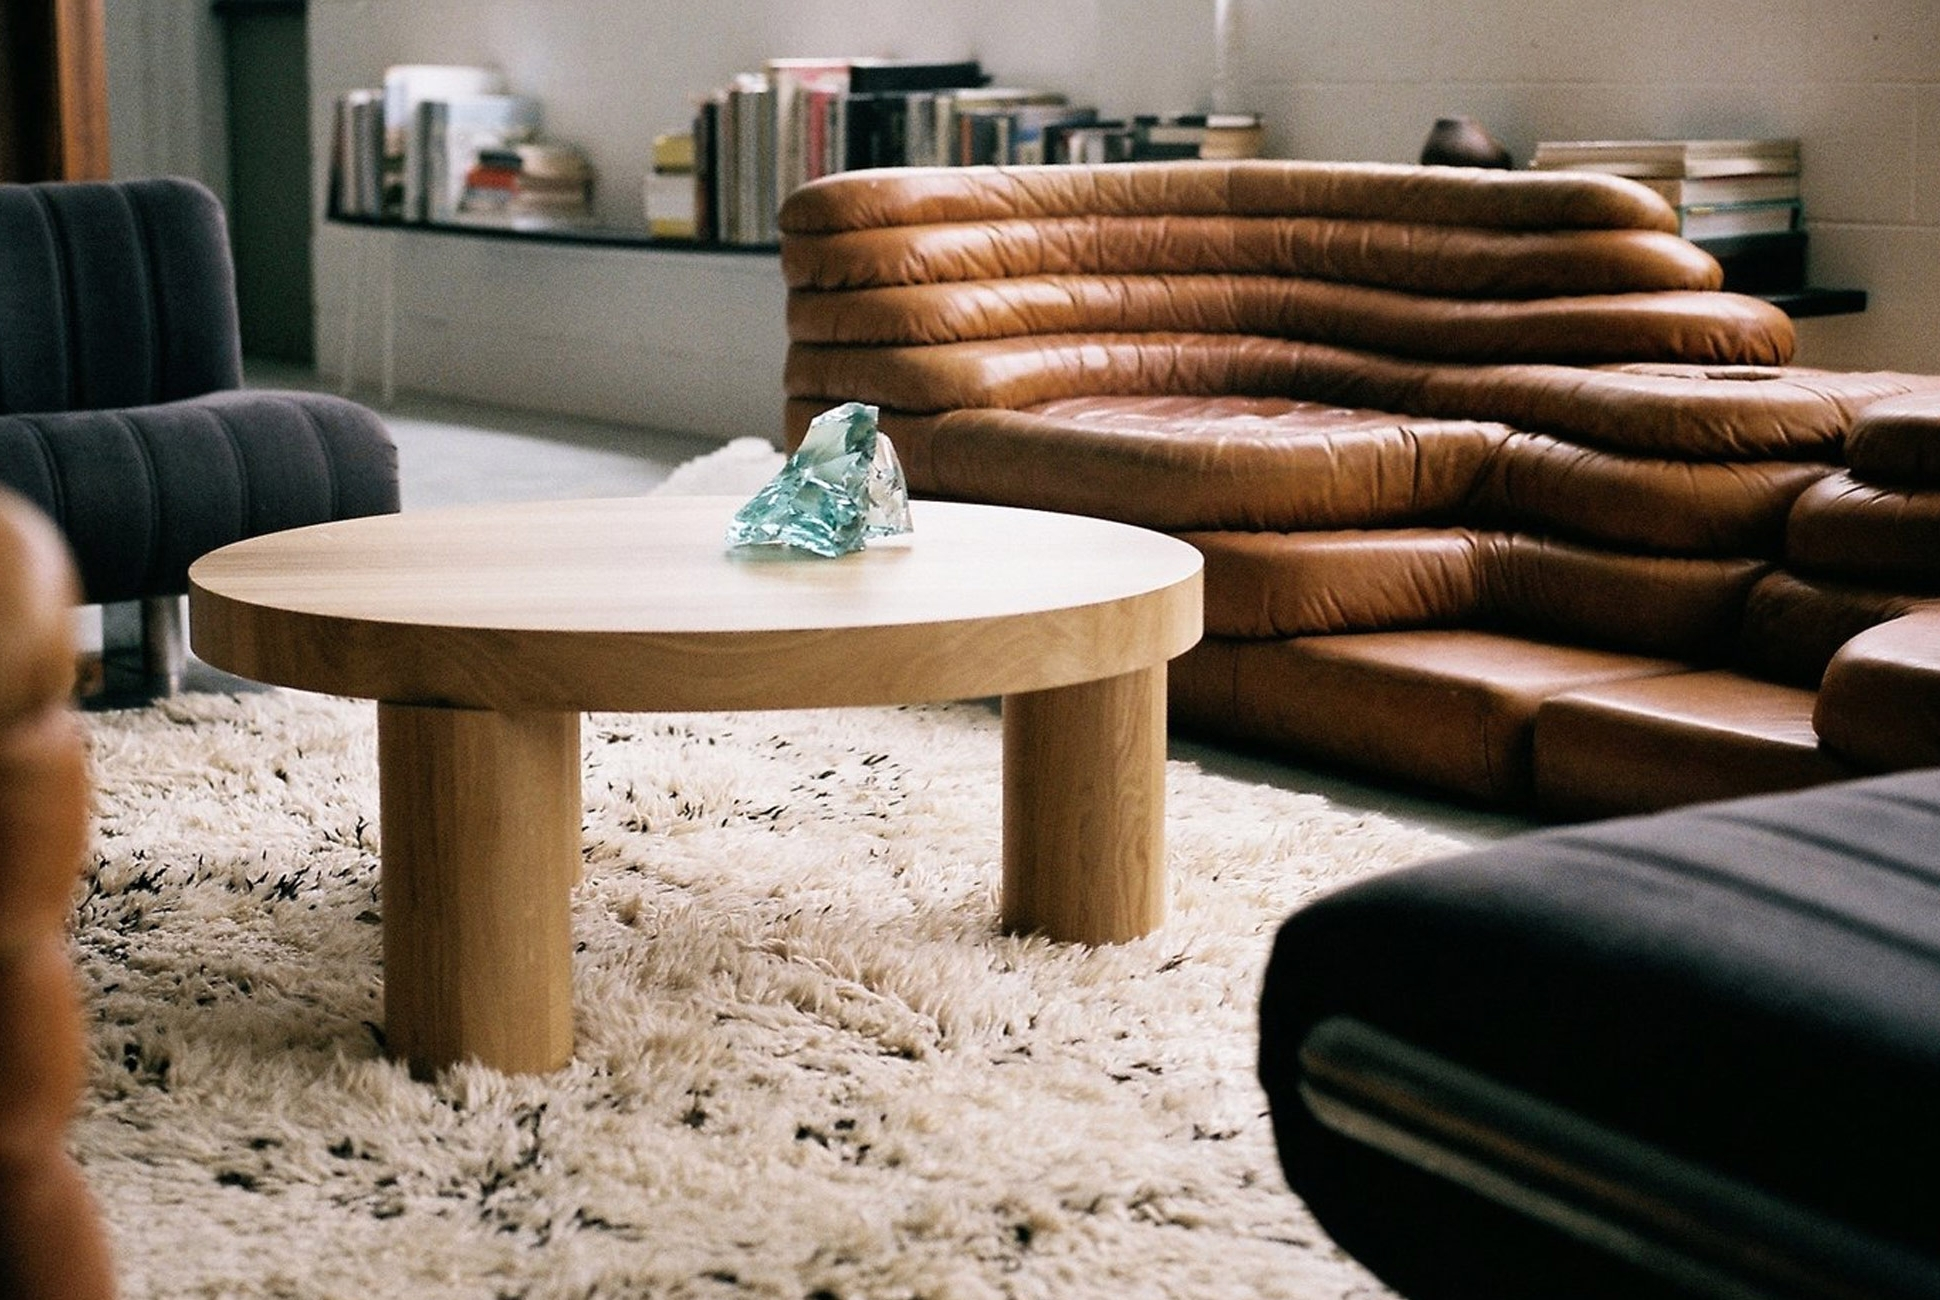 The Best Coffee Tables For Every Budget And Style With Regard To Most Up To Date Shroom Coffee Tables (View 2 of 20)